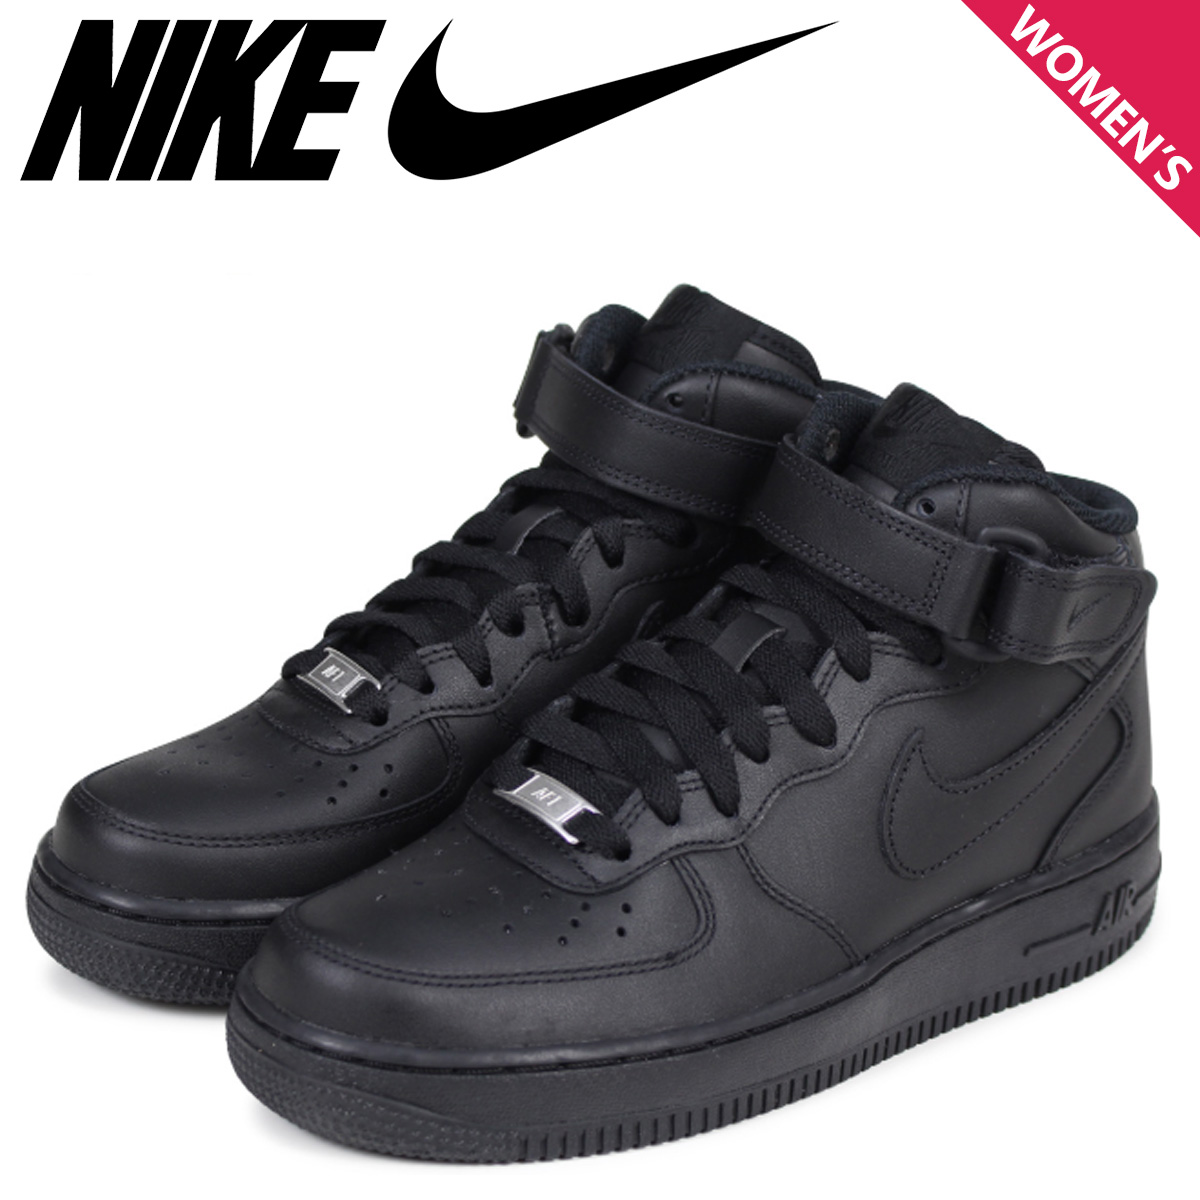 NIKE Nike Air Force sneakers Womens WMNS AIR FORCE 1 MID air force 1 mid  366731 - 001 black shoe  8 2 new in stock  f614caa9d